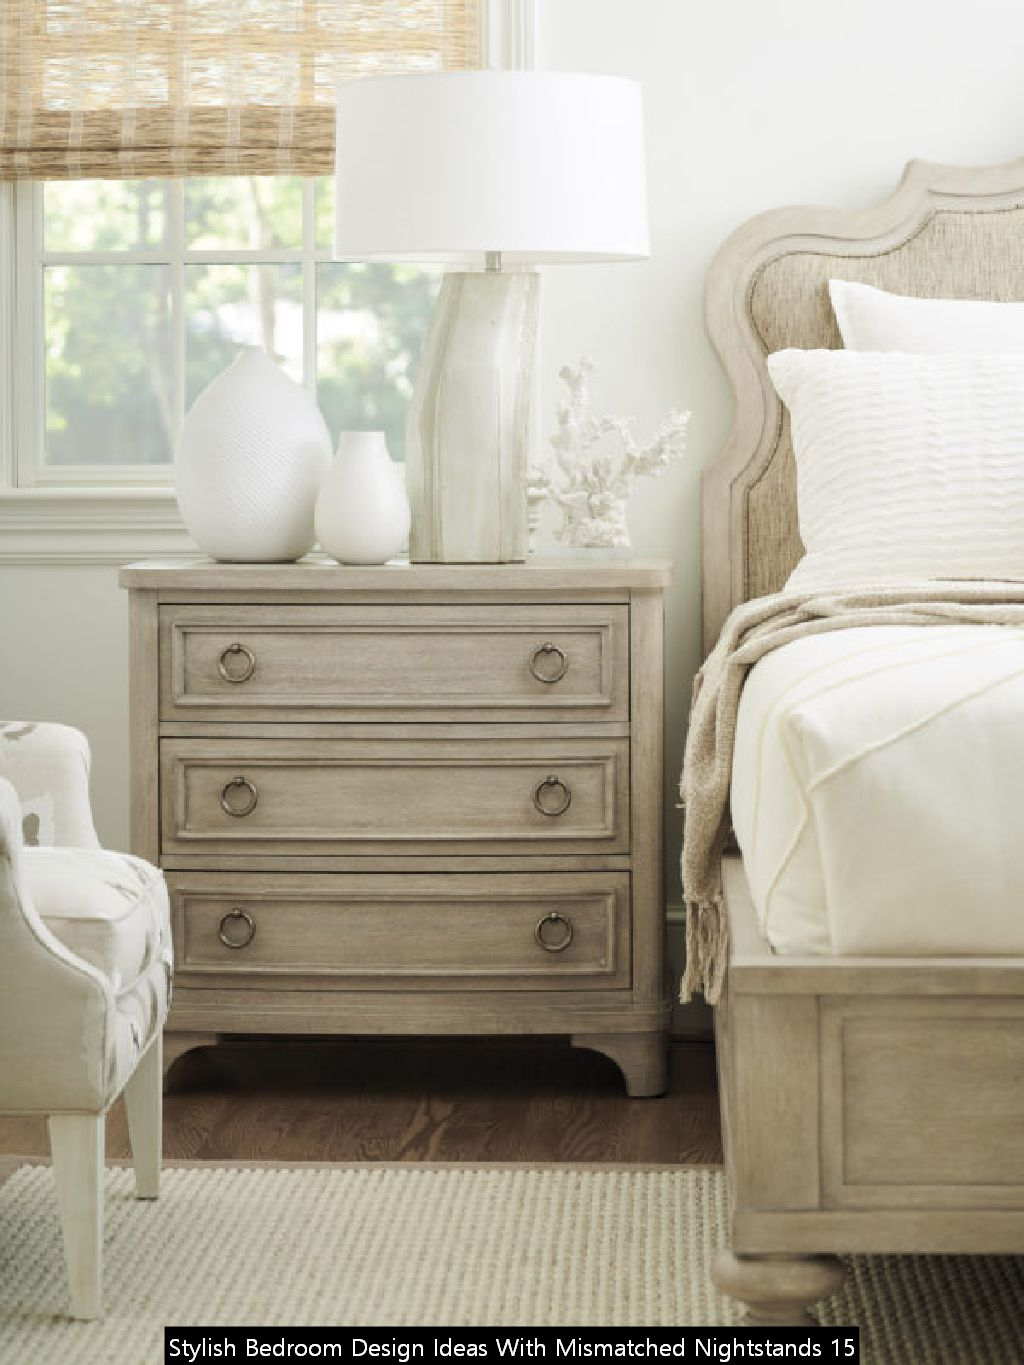 Stylish Bedroom Design Ideas With Mismatched Nightstands 15